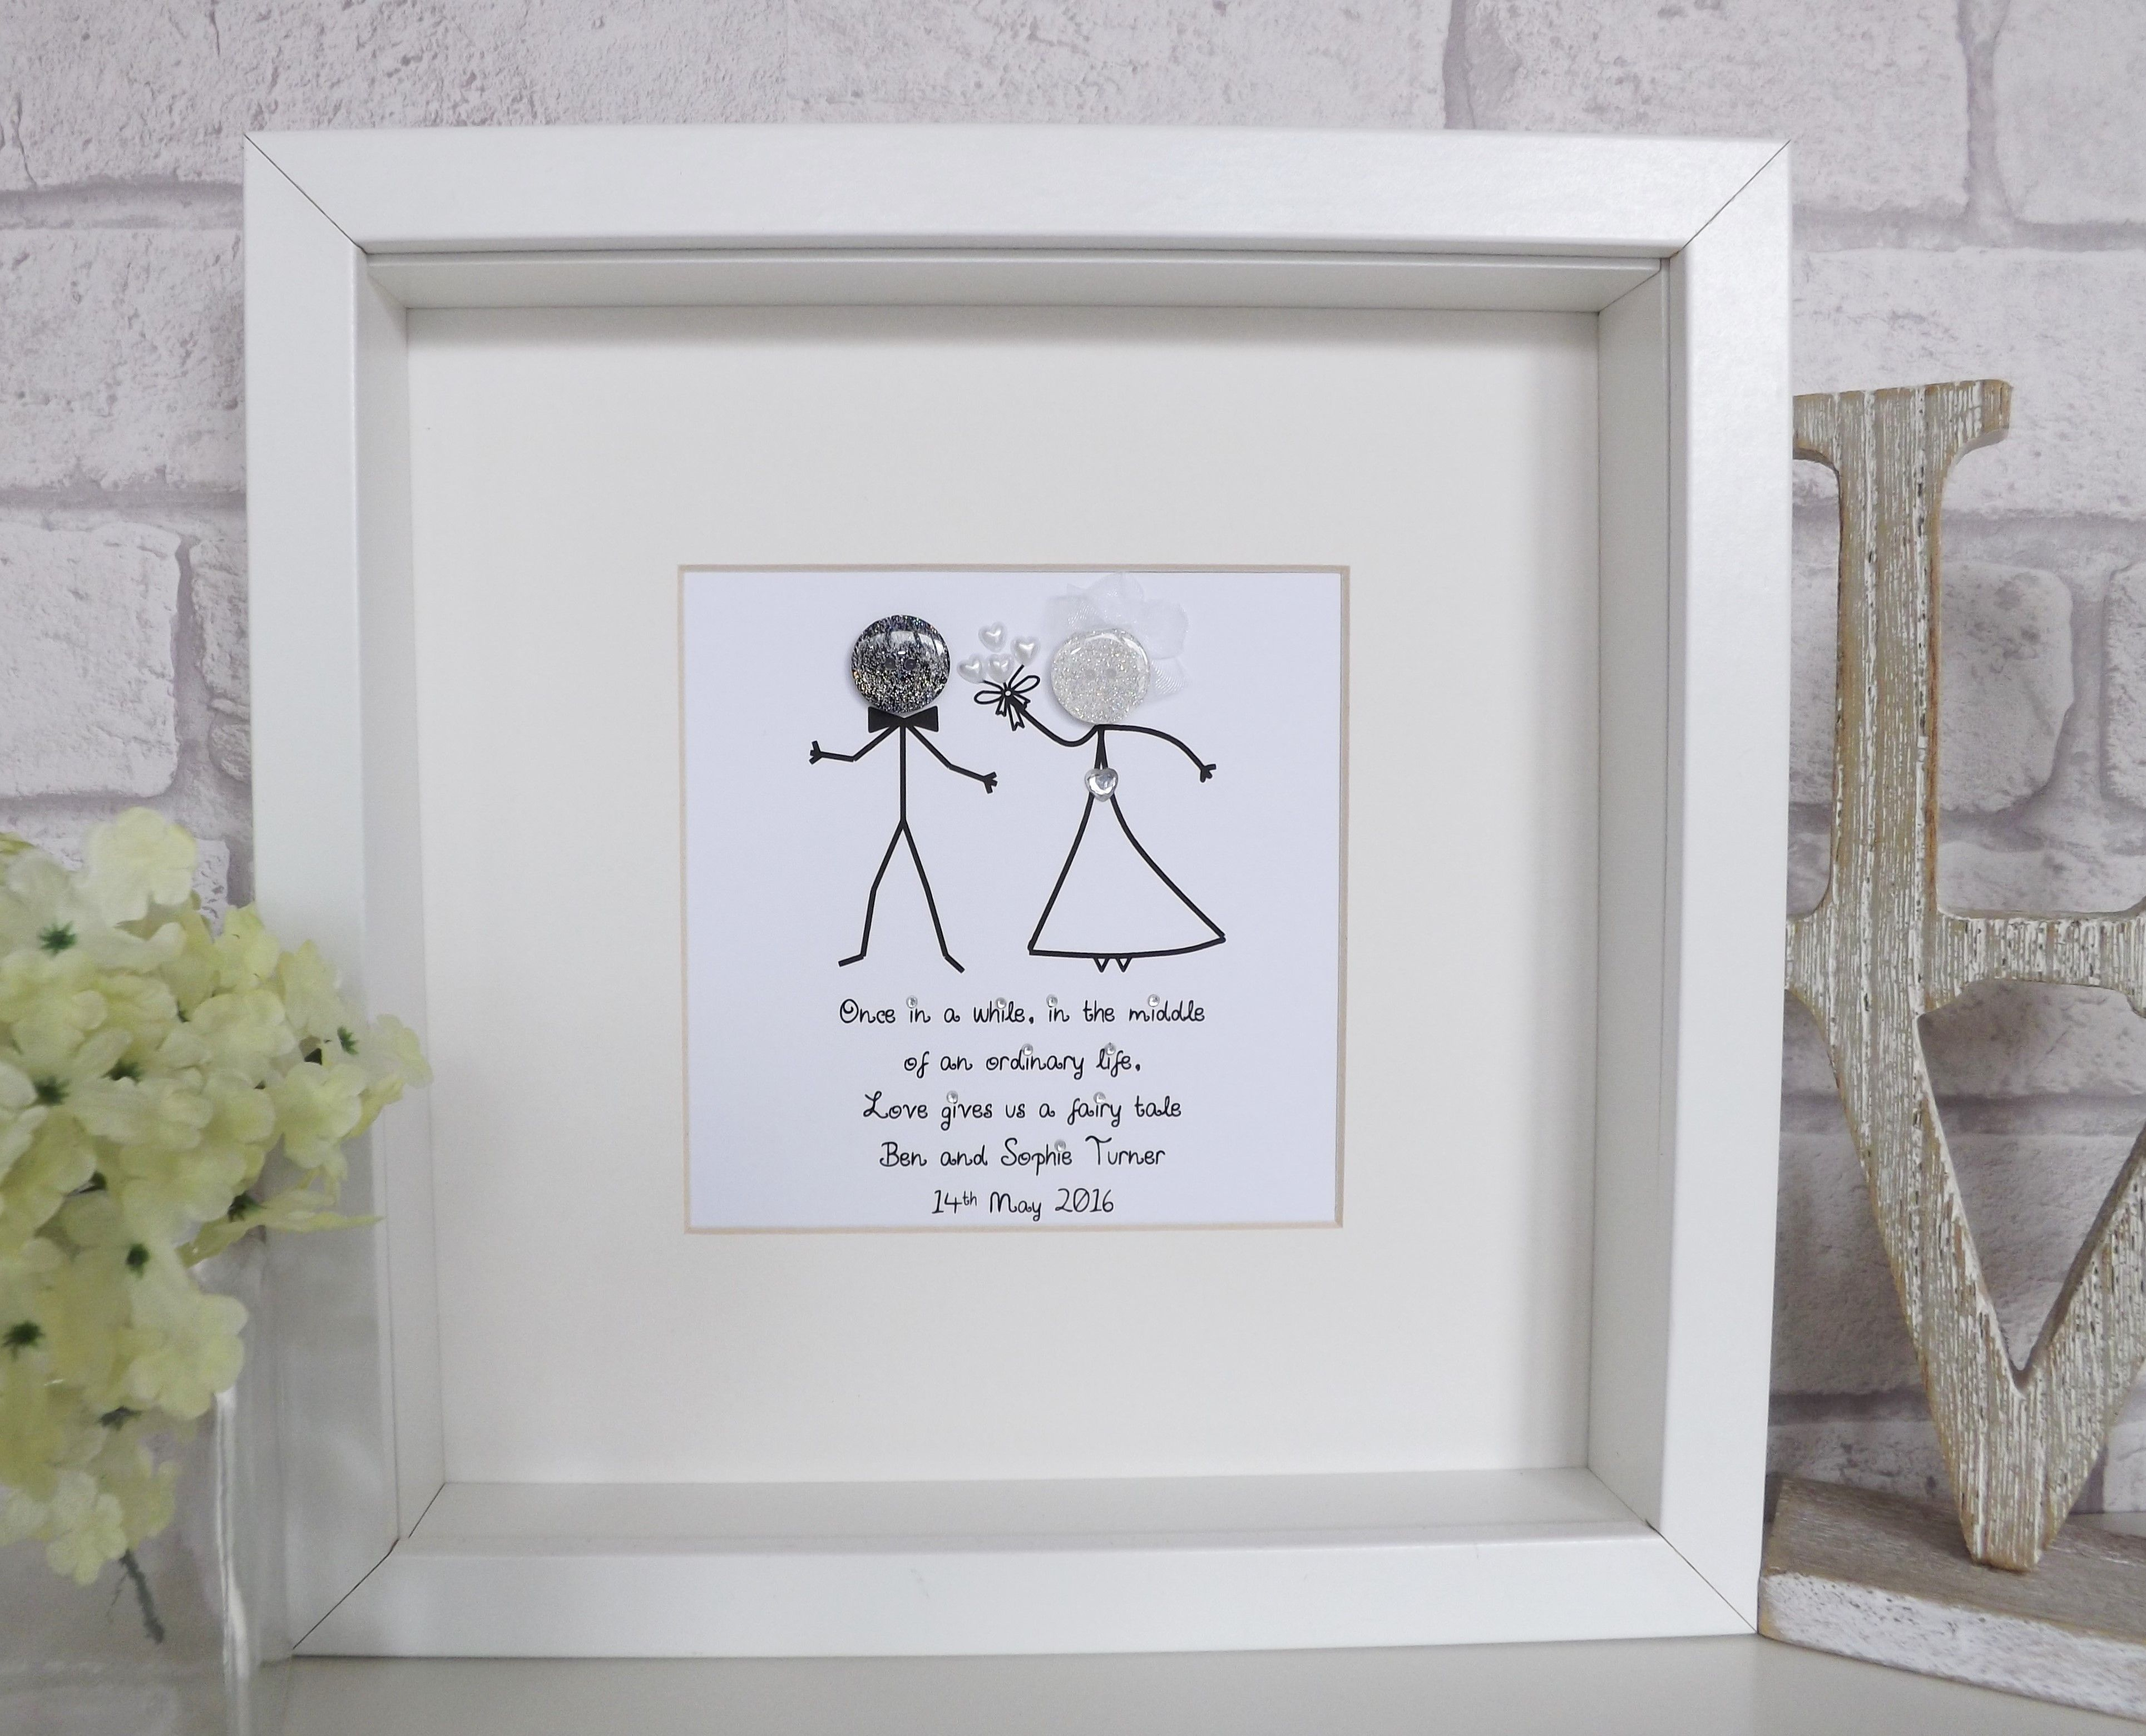 Fantastic personalised wedding gift for bride and groom